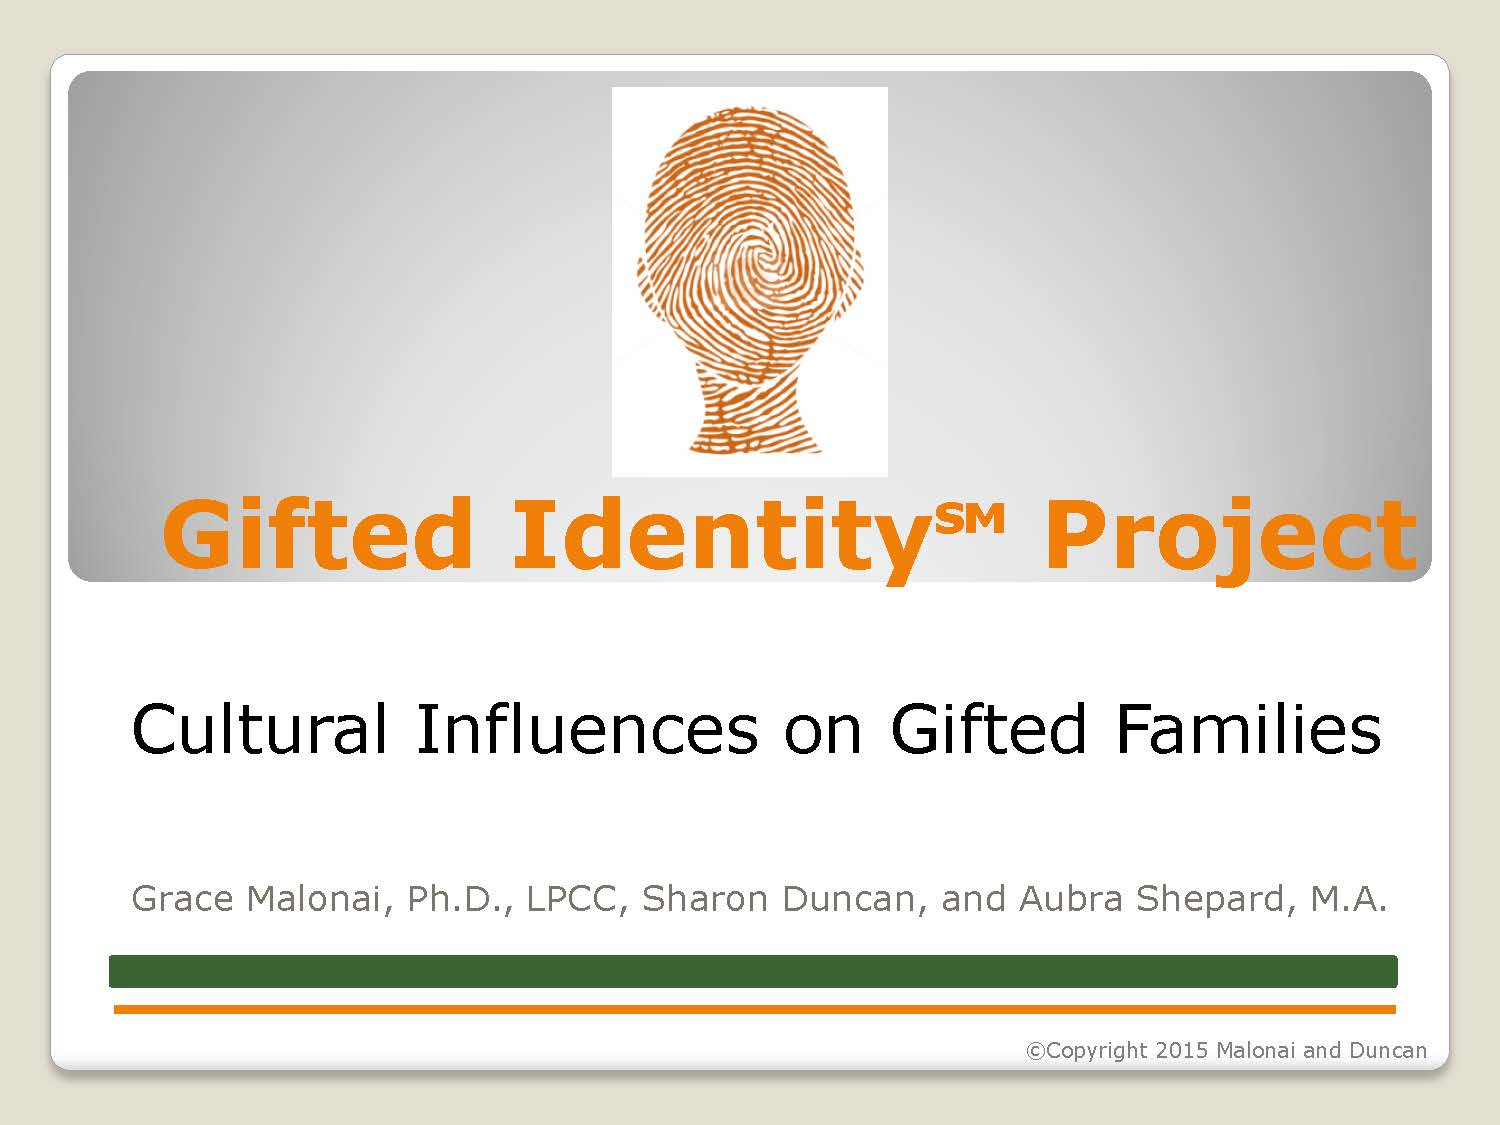 Gifted Identity Project Cultural Influences on Gifted Families